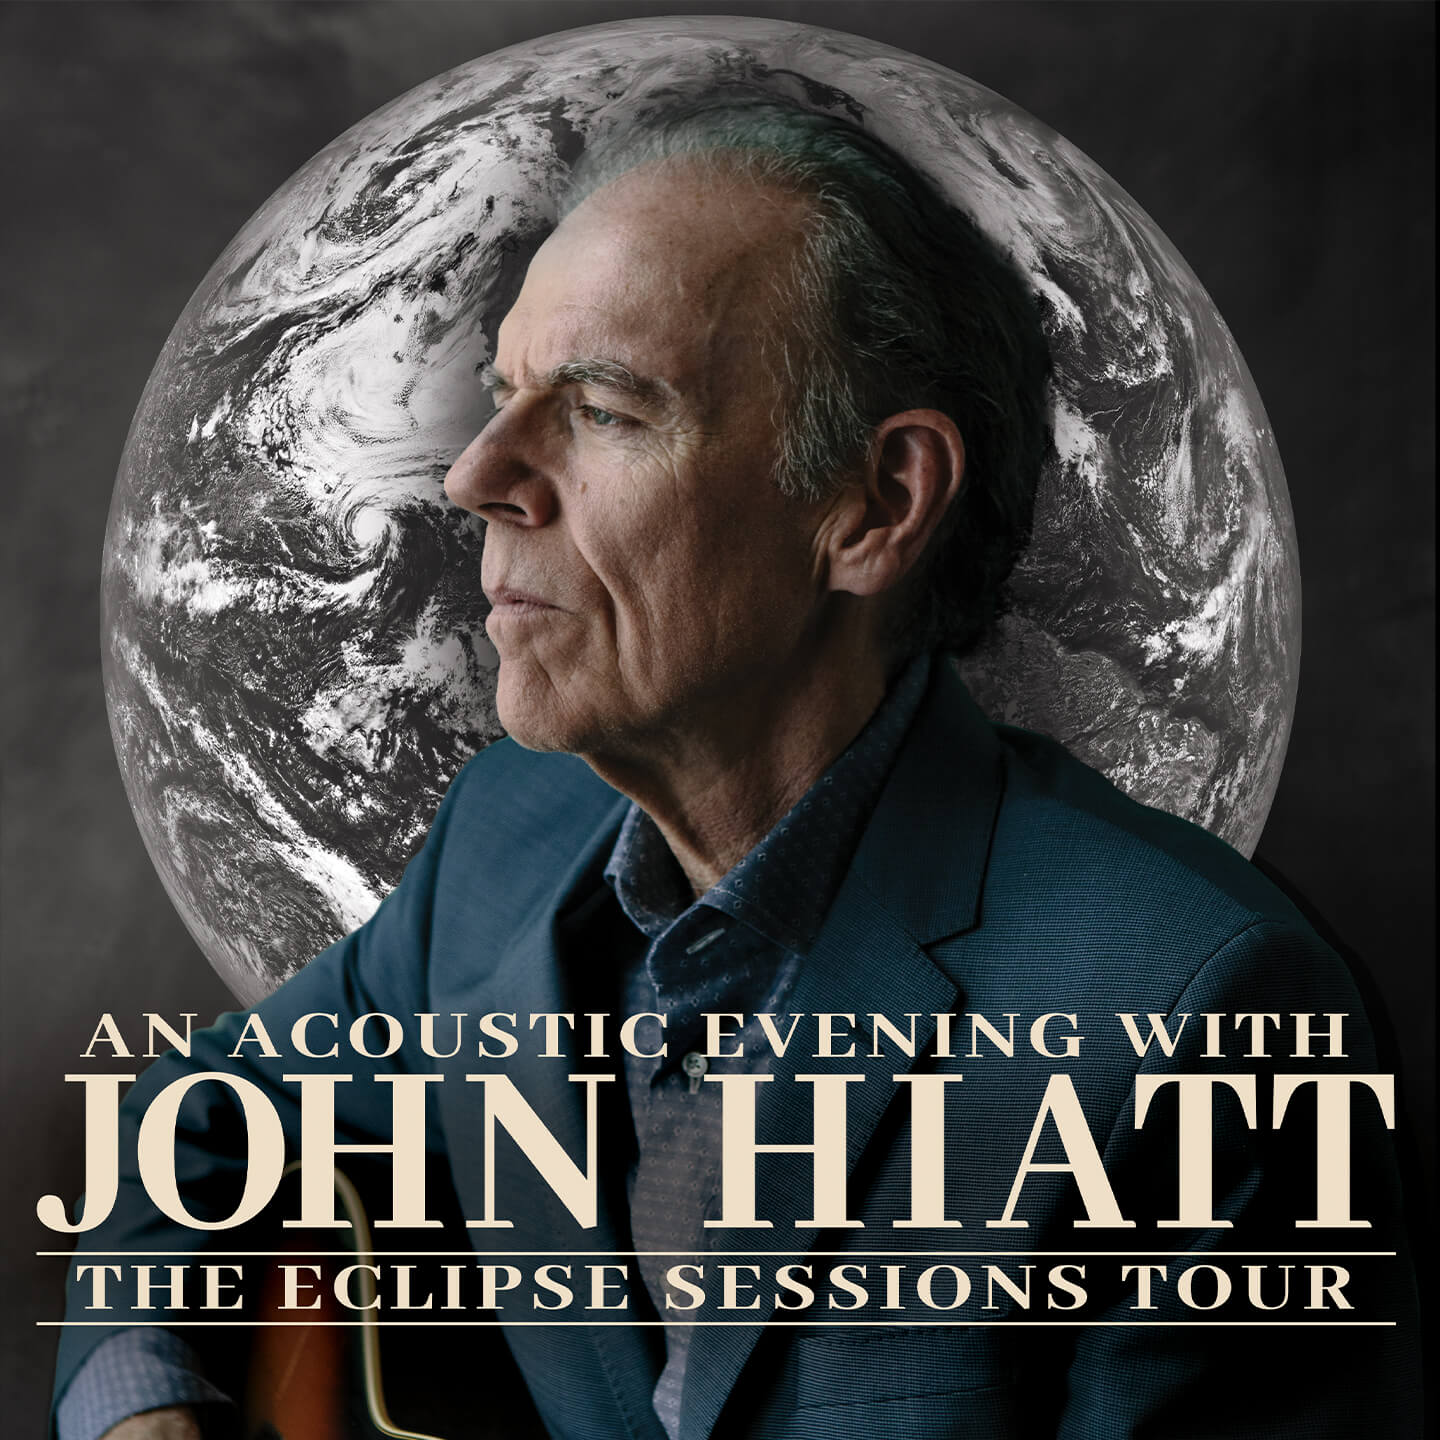 An Acoustic Evening with John Hiatt